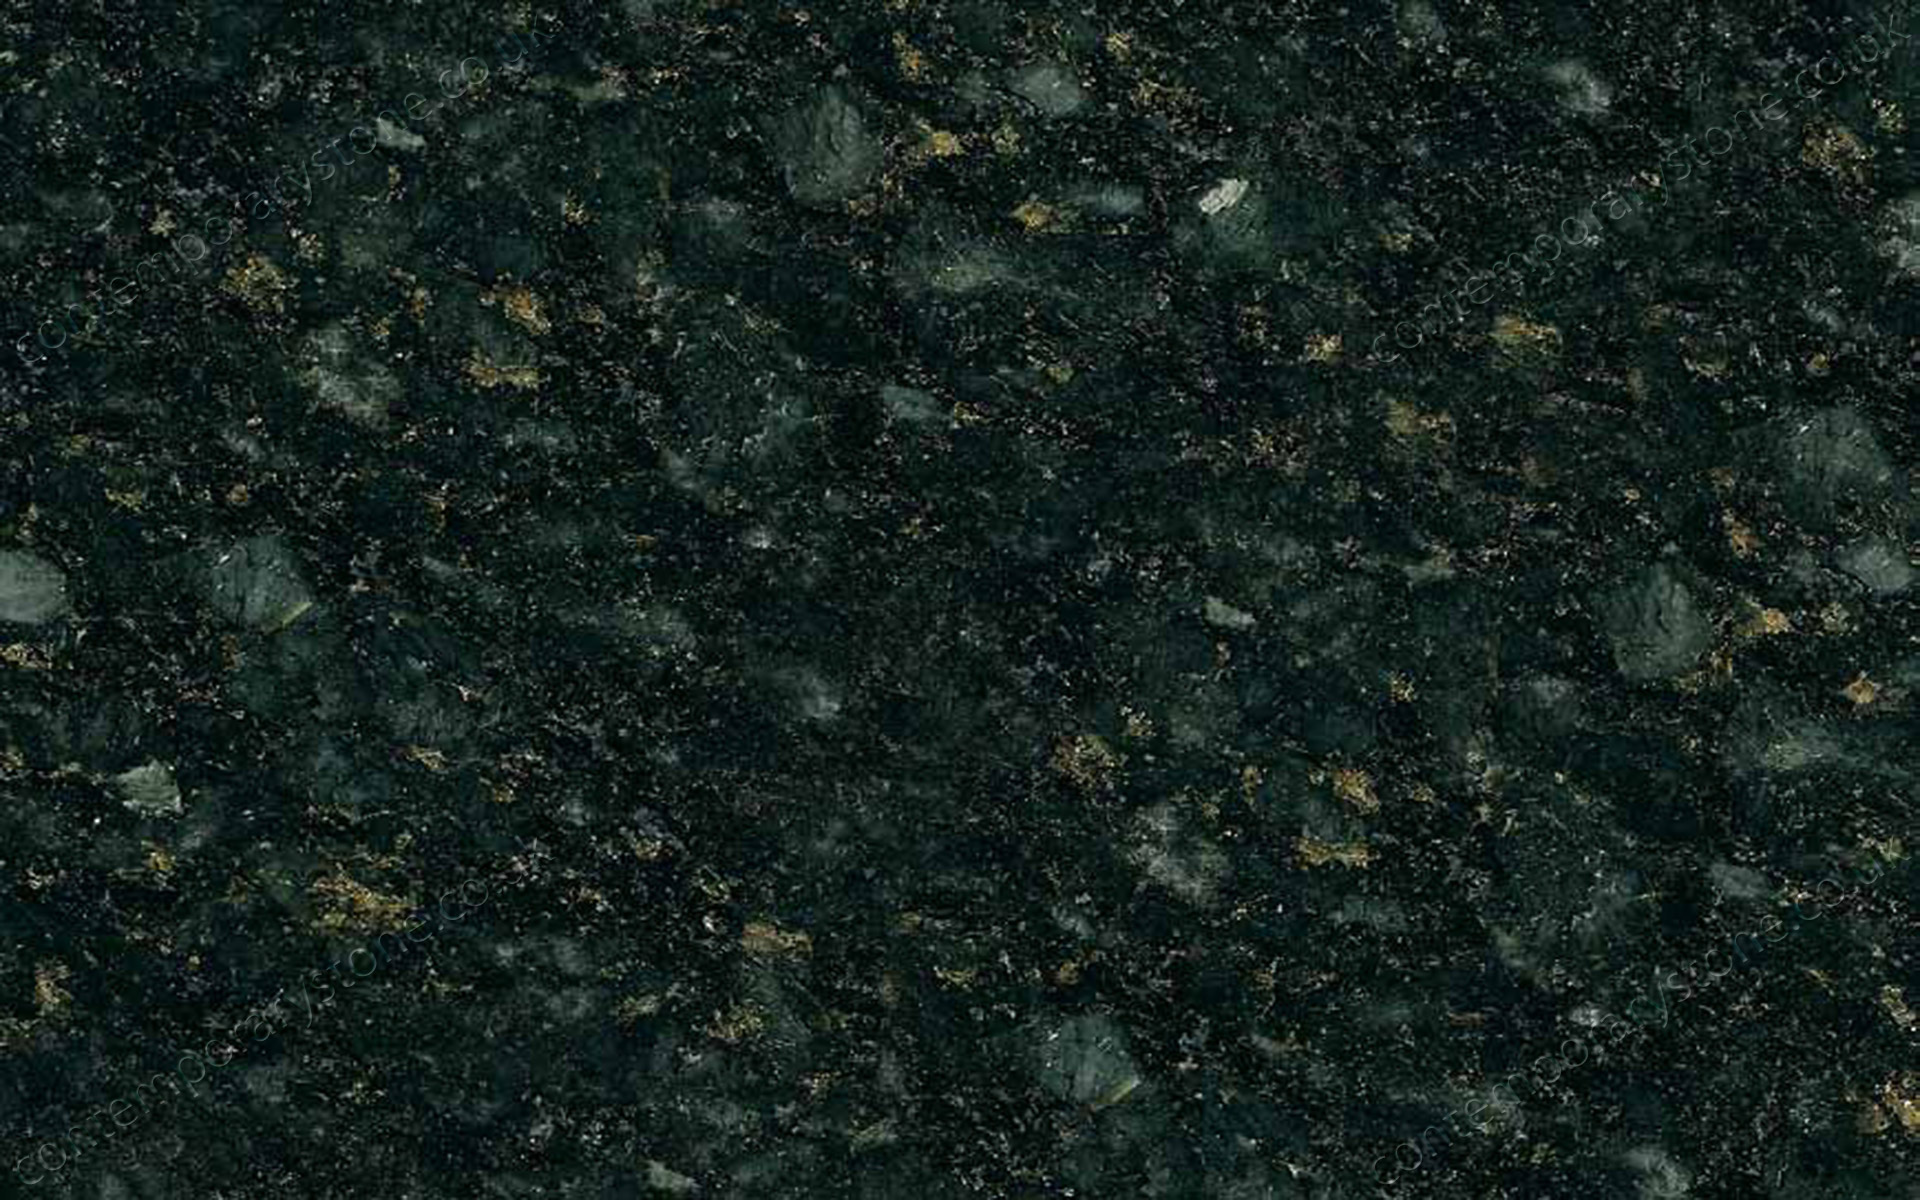 Verde Ubatuba granite close-up